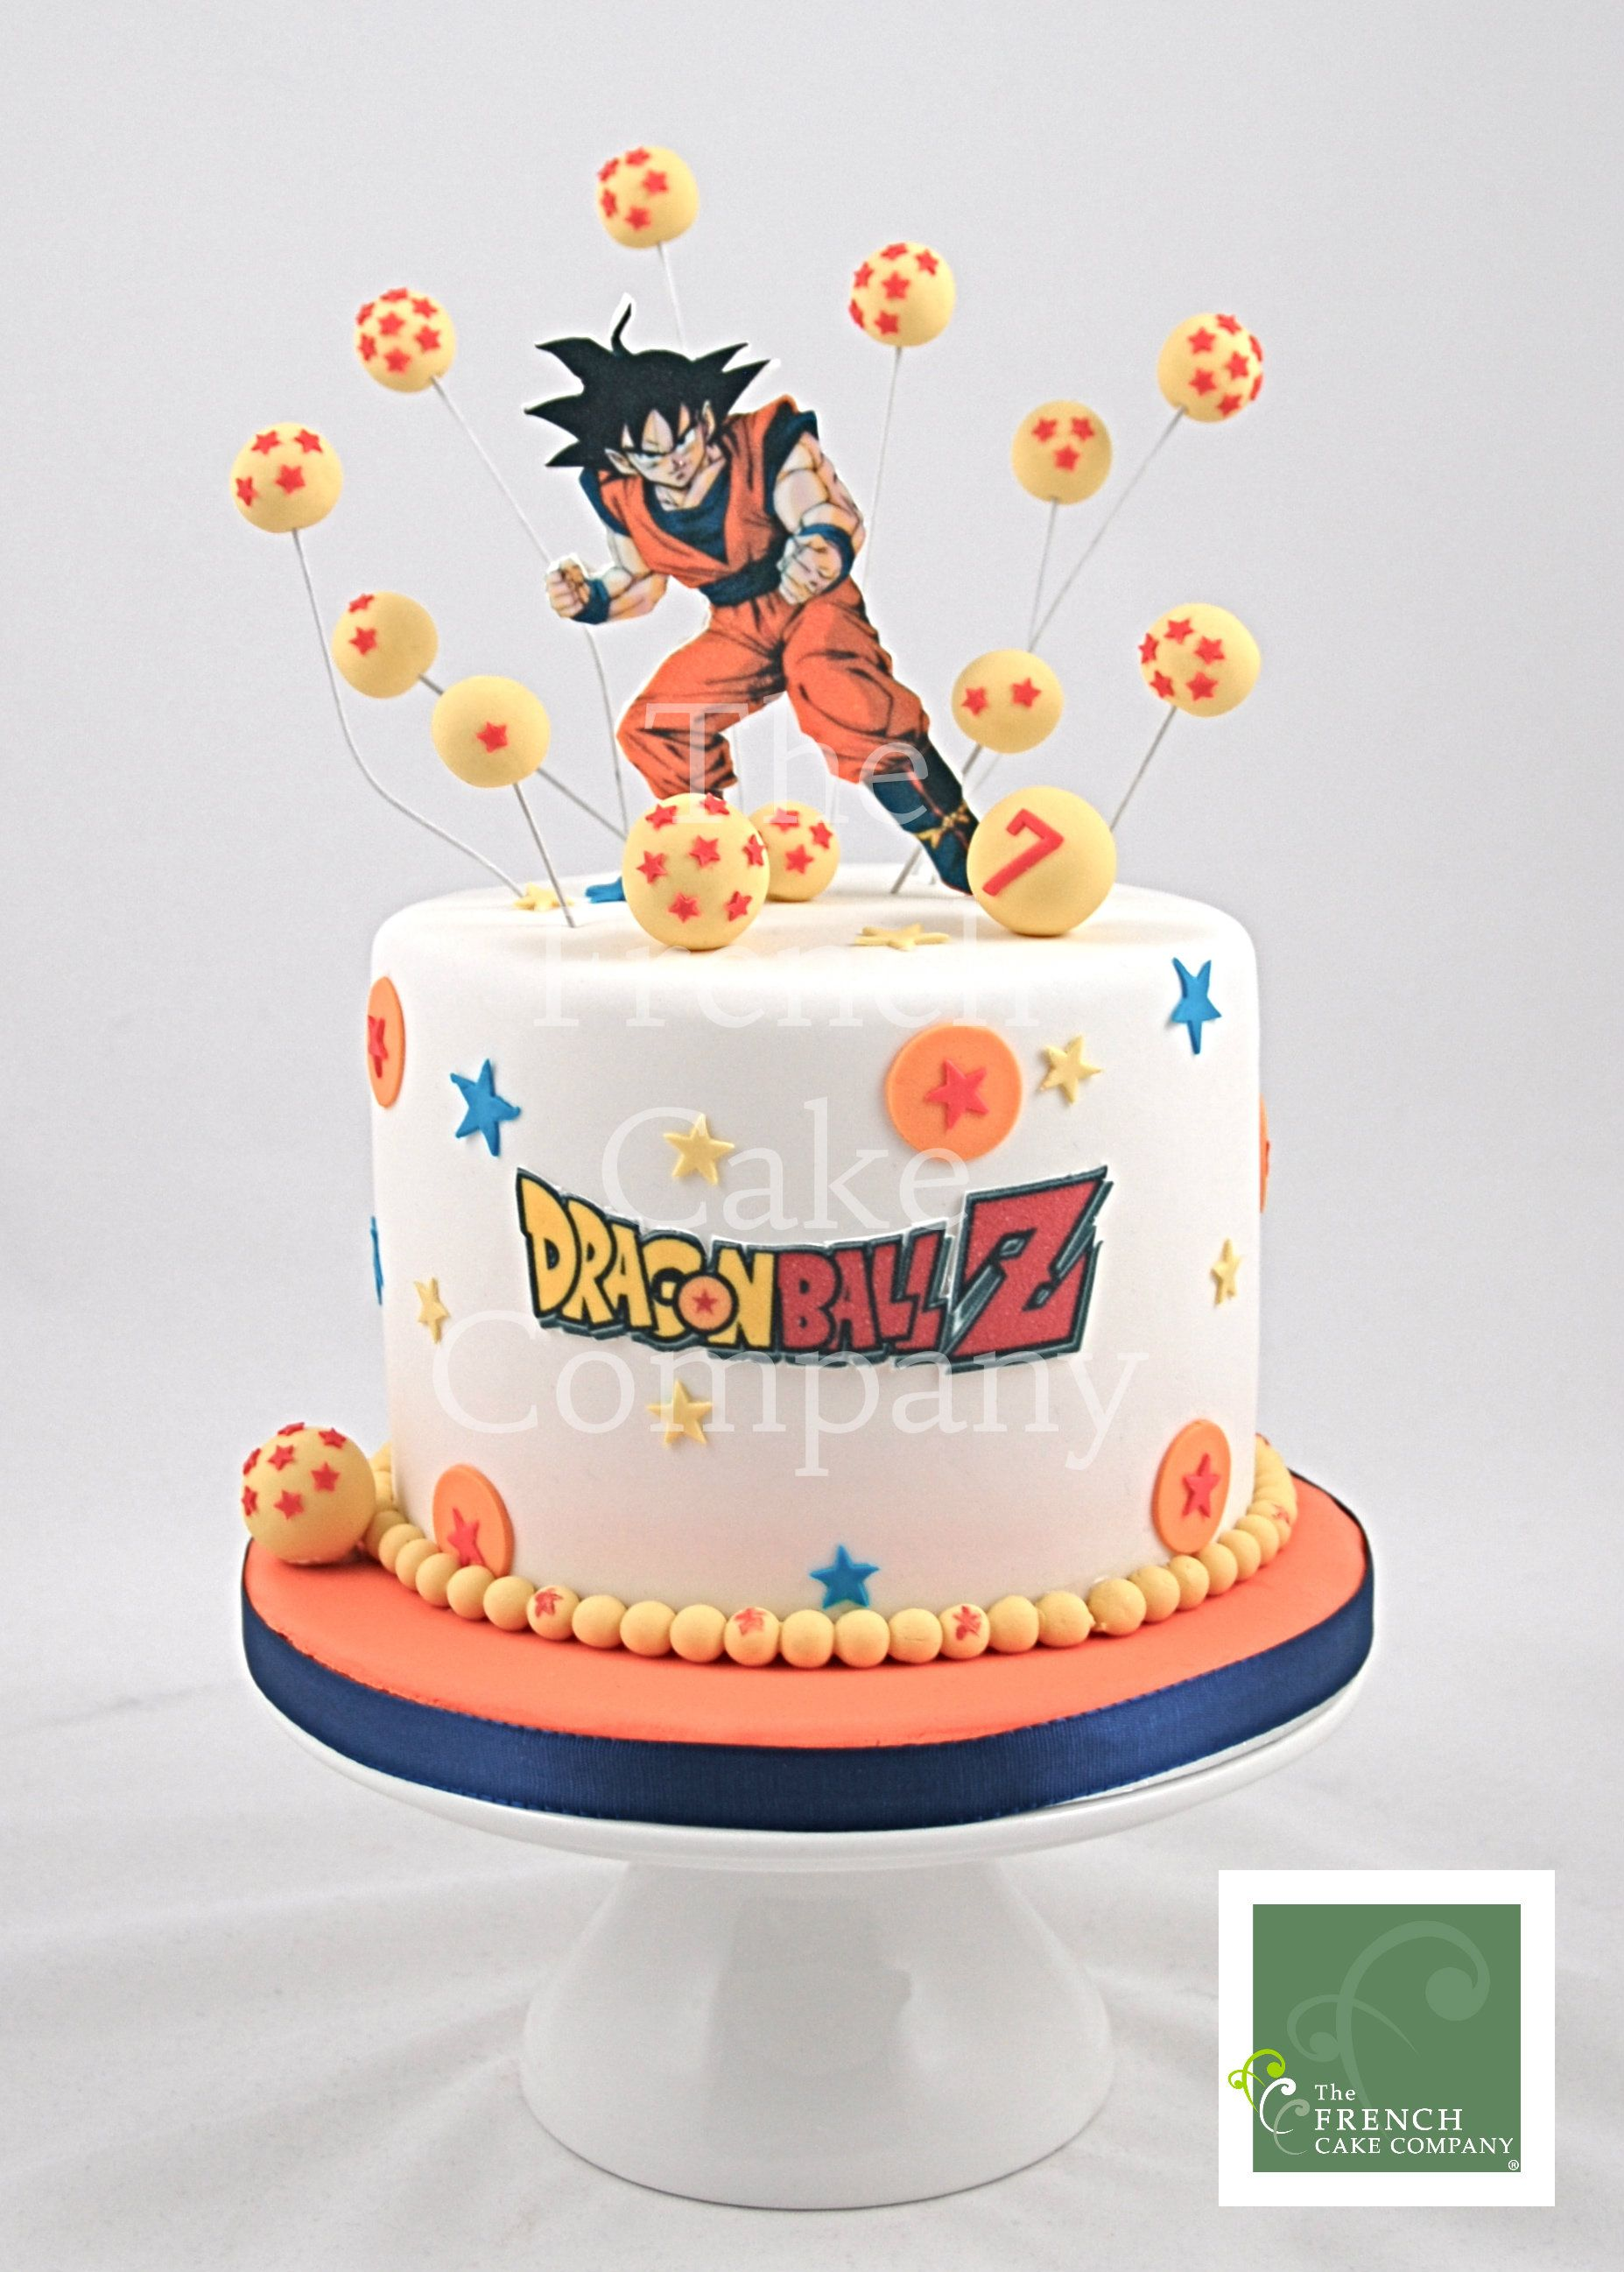 Décoration Gateau Belgique Childrens Birthday Cake Dragonball Z Gateau D